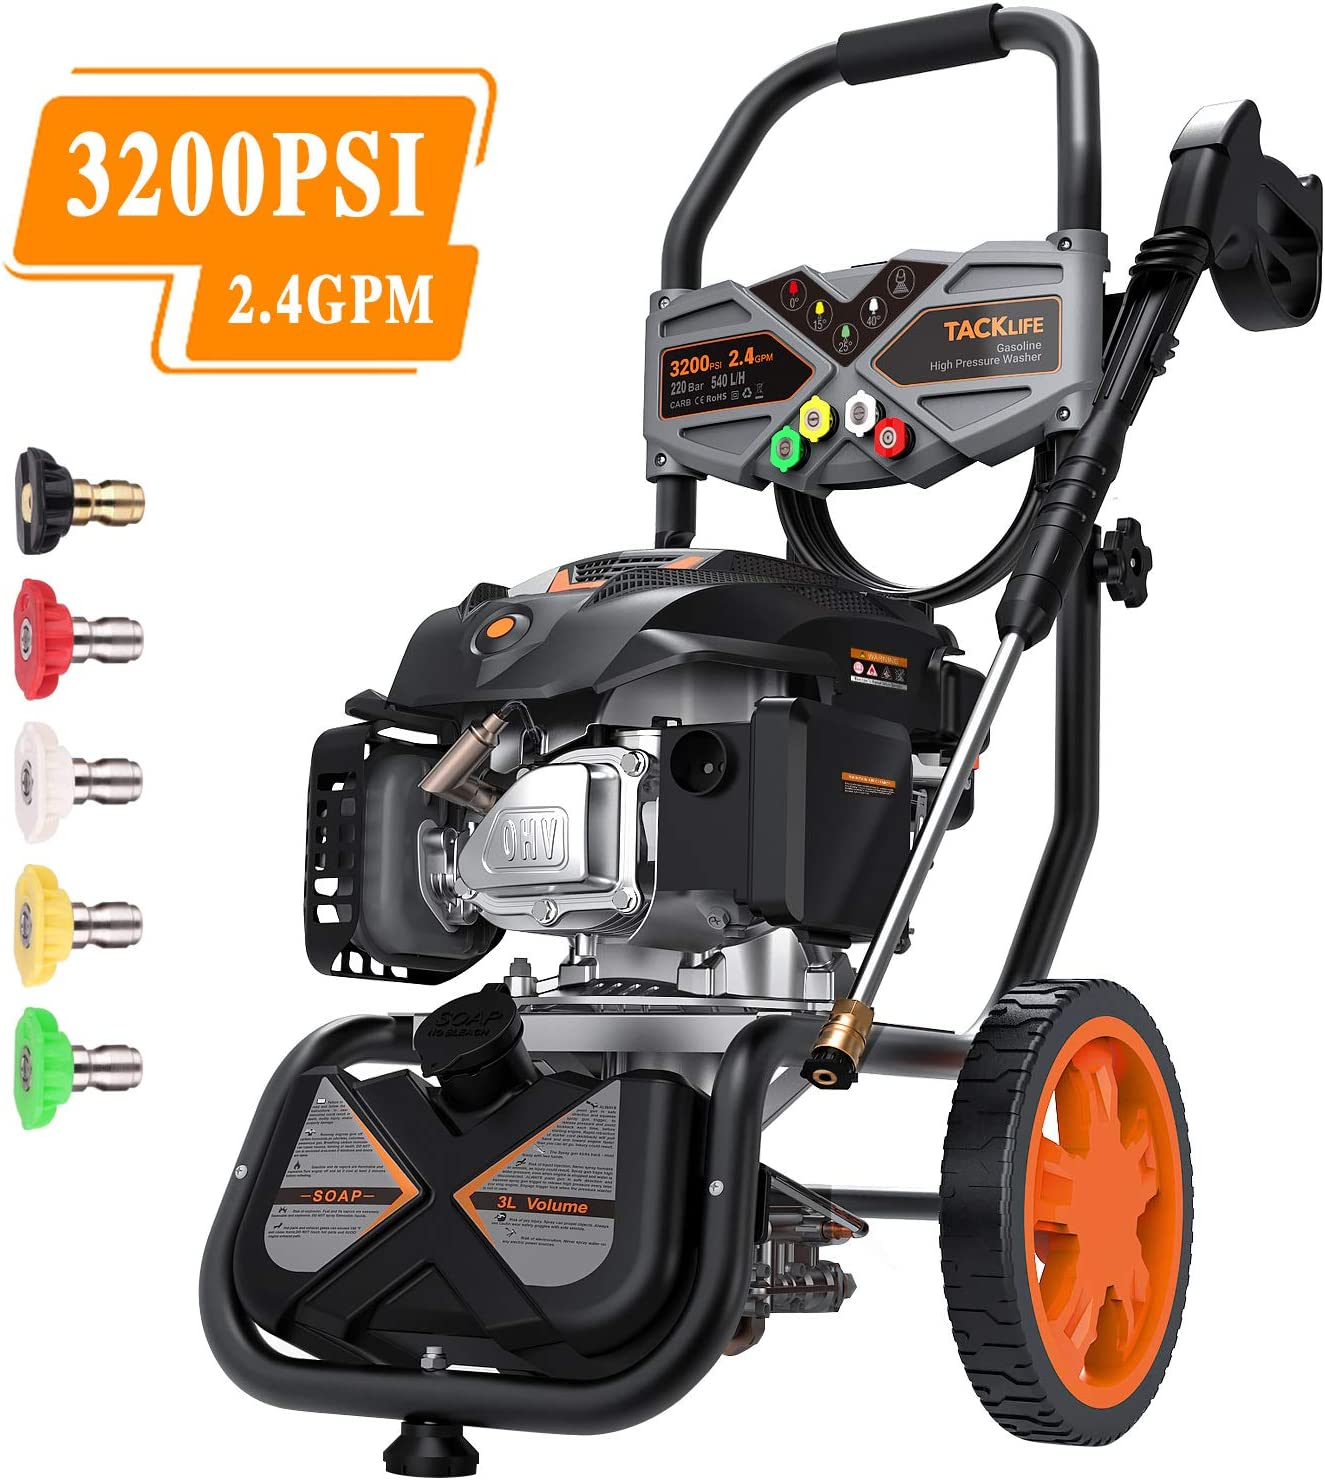 TACKLIFE Gas Pressure Washer 3200PSI at 2.4GPM 6.5 Peak HP, 5 Nozzles, 25FT Hose, Easy Move, Multiple Accessories, Excellent Powered Pressure Washer for Vehicle, Garden, Yard, Ground-GSH01B